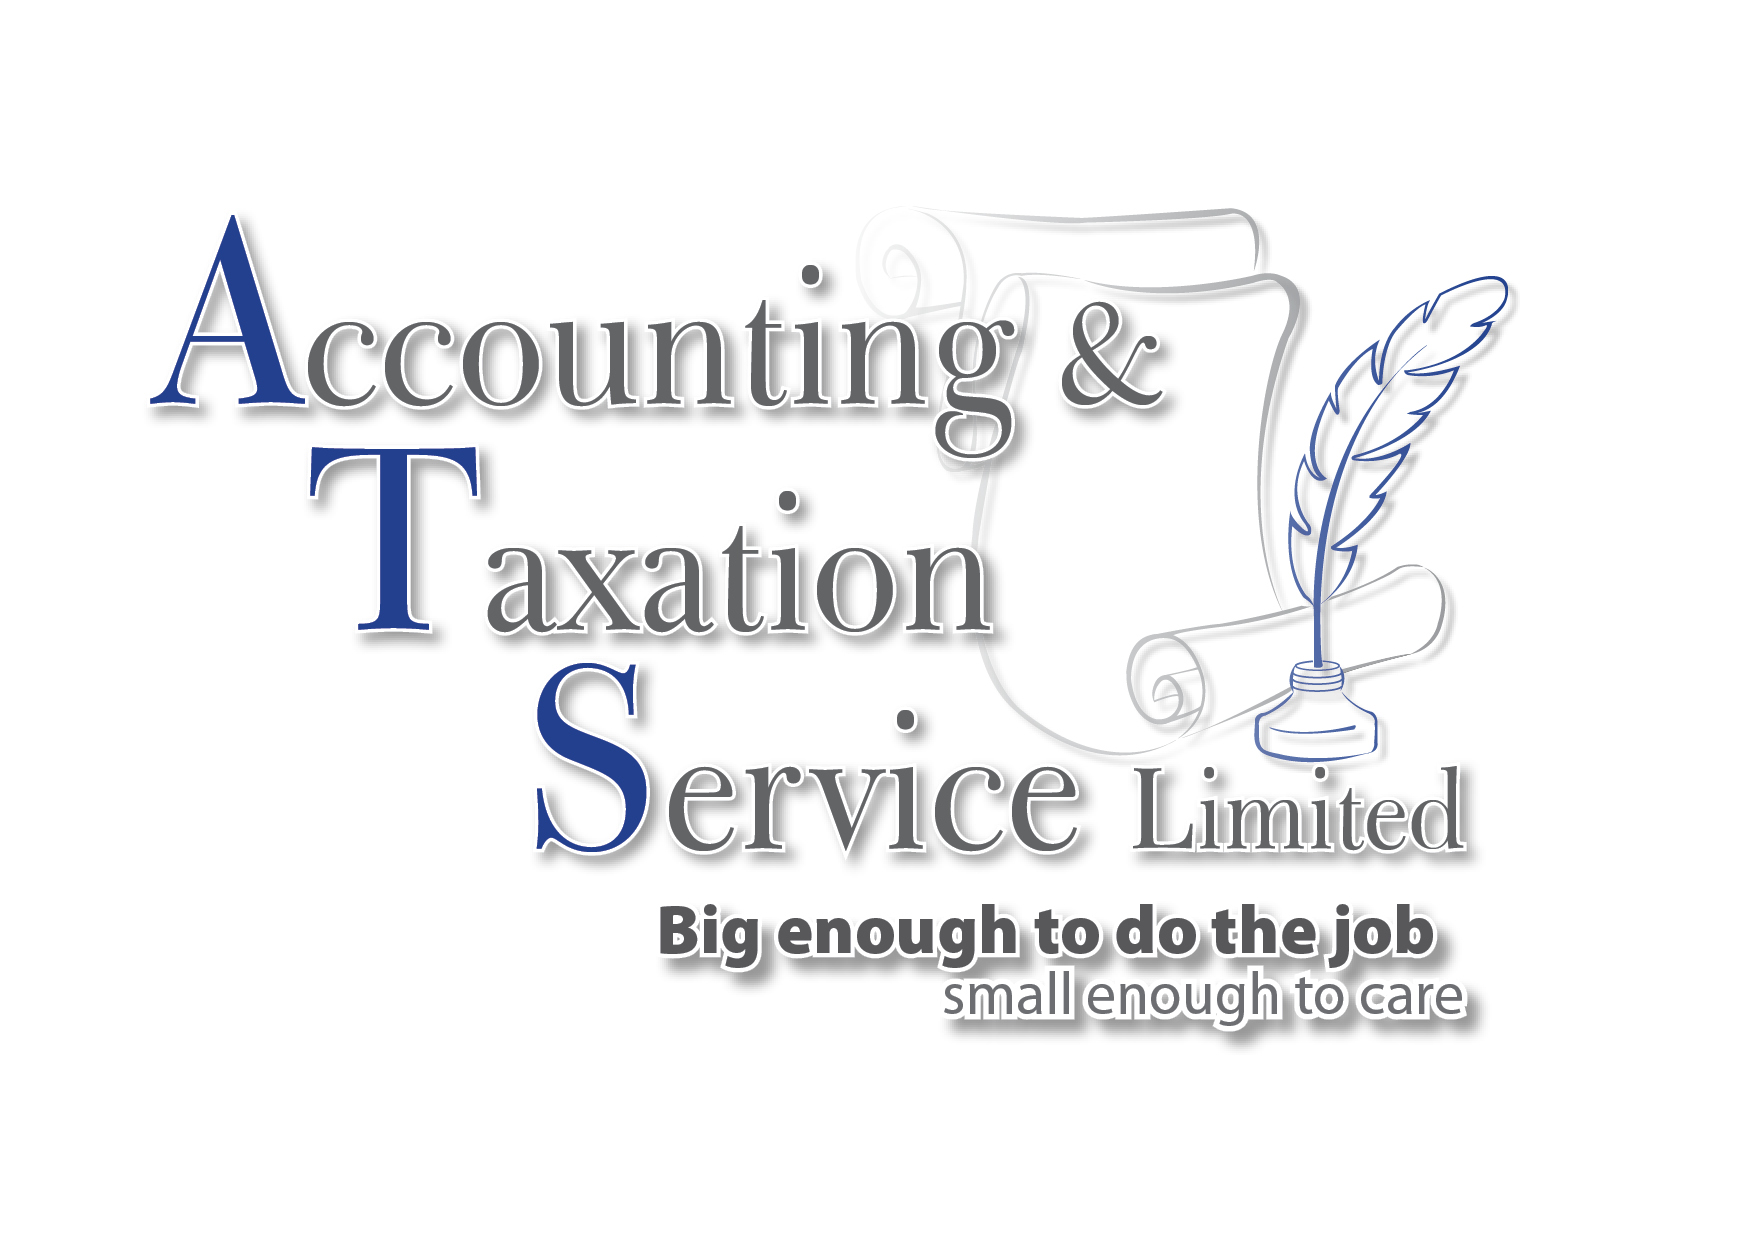 ACCOUNTING & TAXATION SERVICE LTD